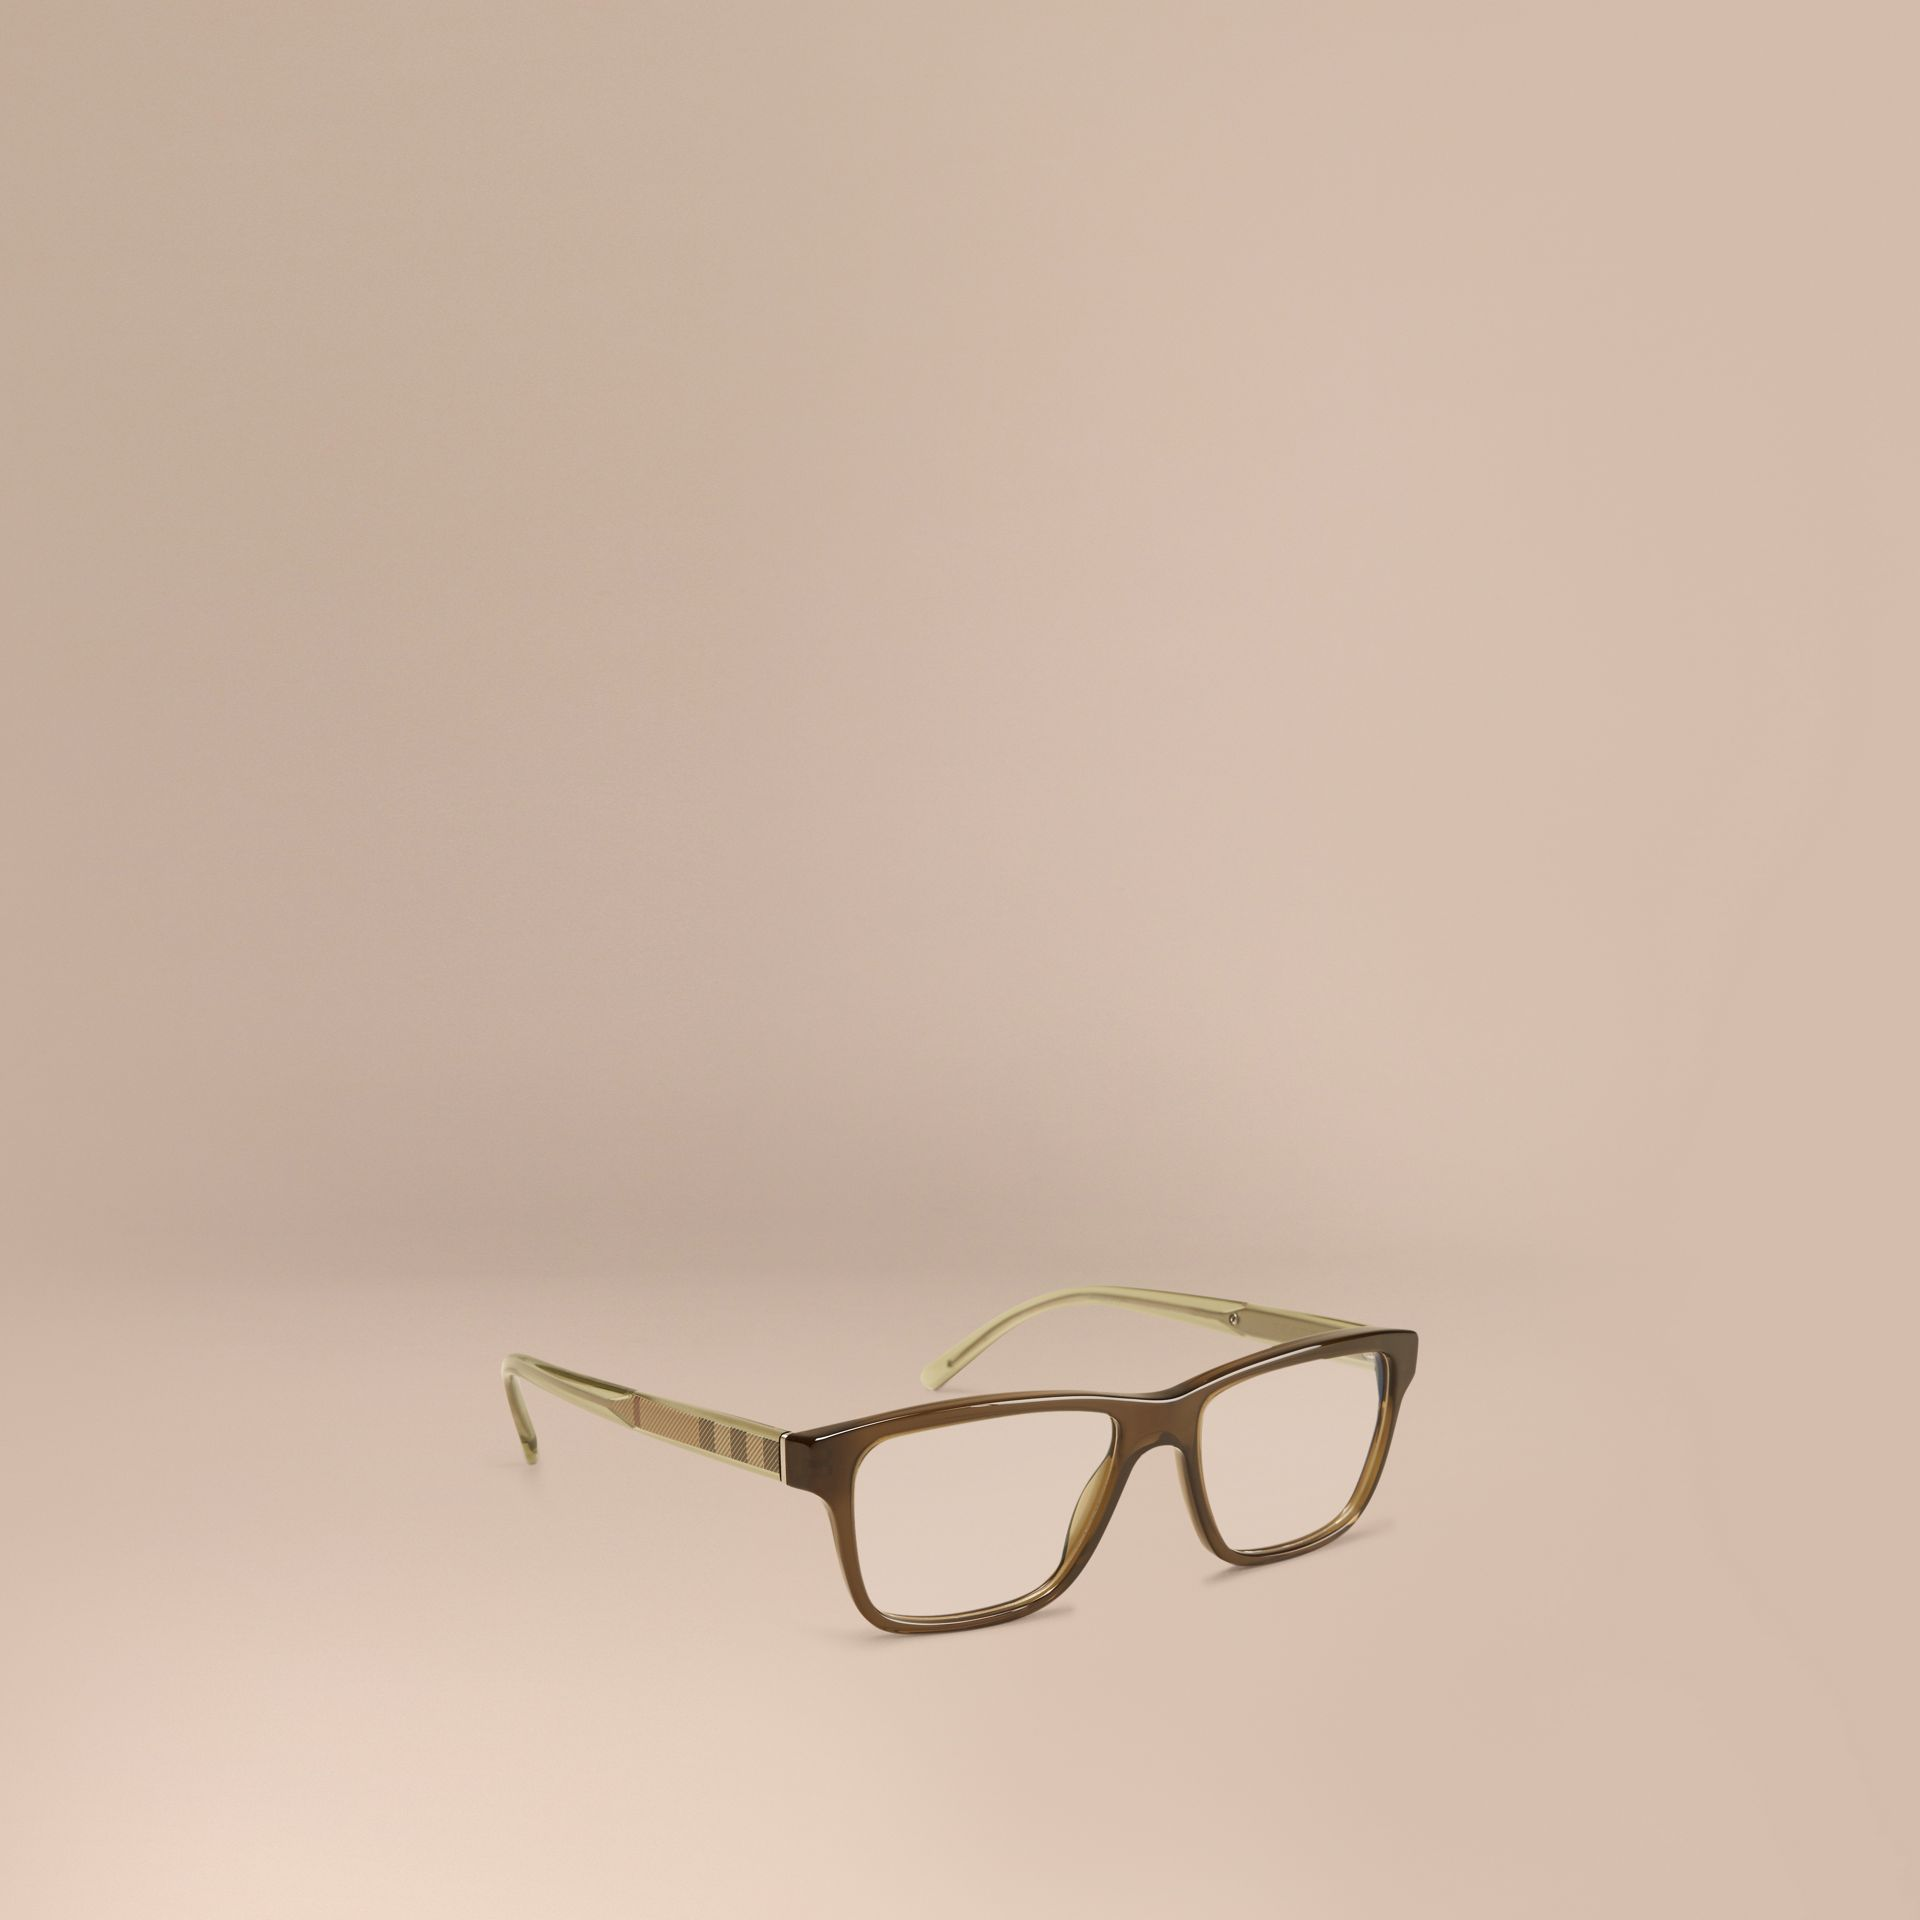 Olive Check Detail Rectangular Optical Frames Olive - gallery image 1